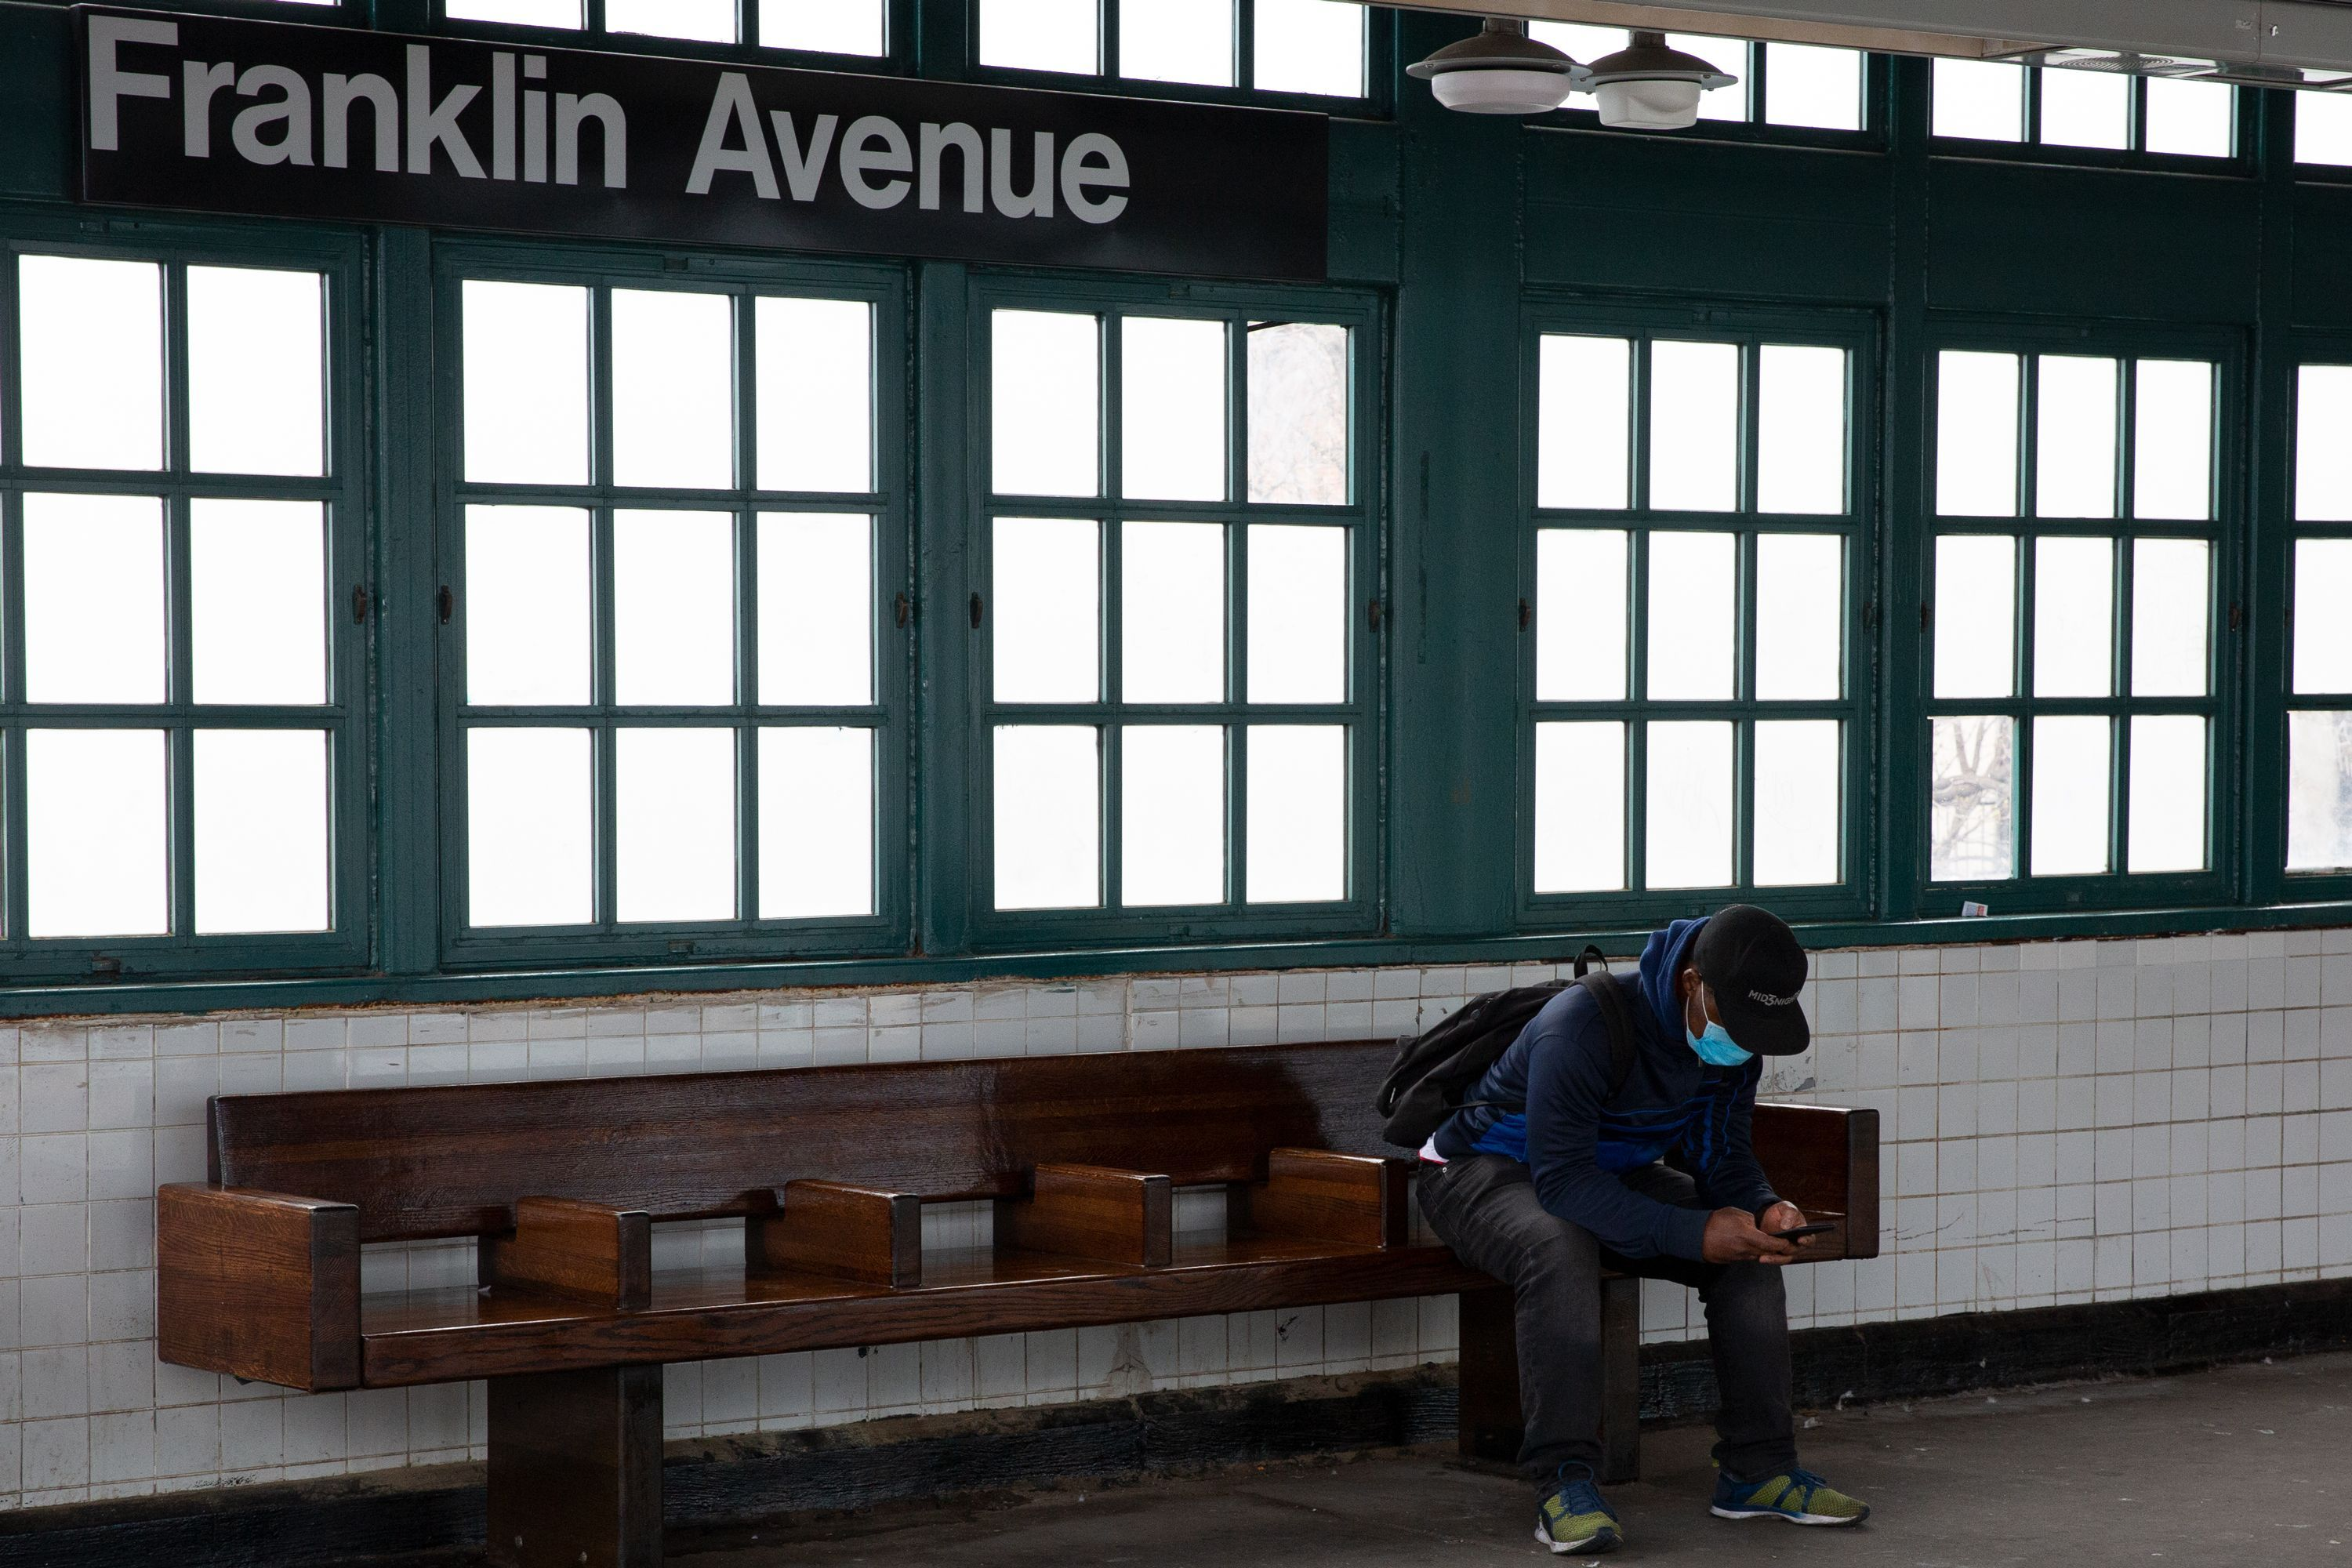 A man waits for the Franklin Avenue shuttle during the coronavirus outbreak.